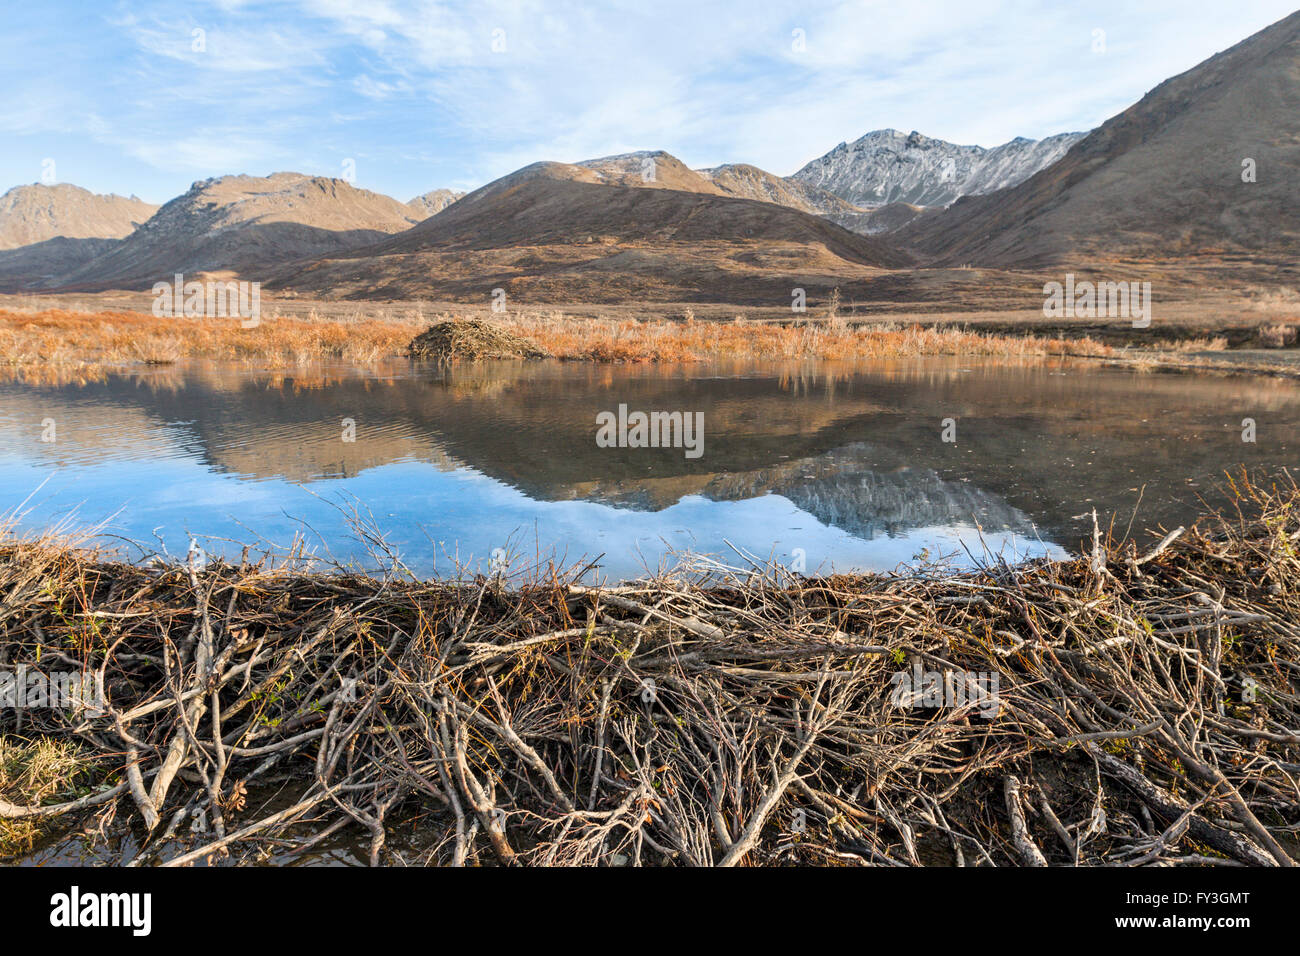 A beaver dam and pond reflecting the Alaskan Range mountains. Stock Photo